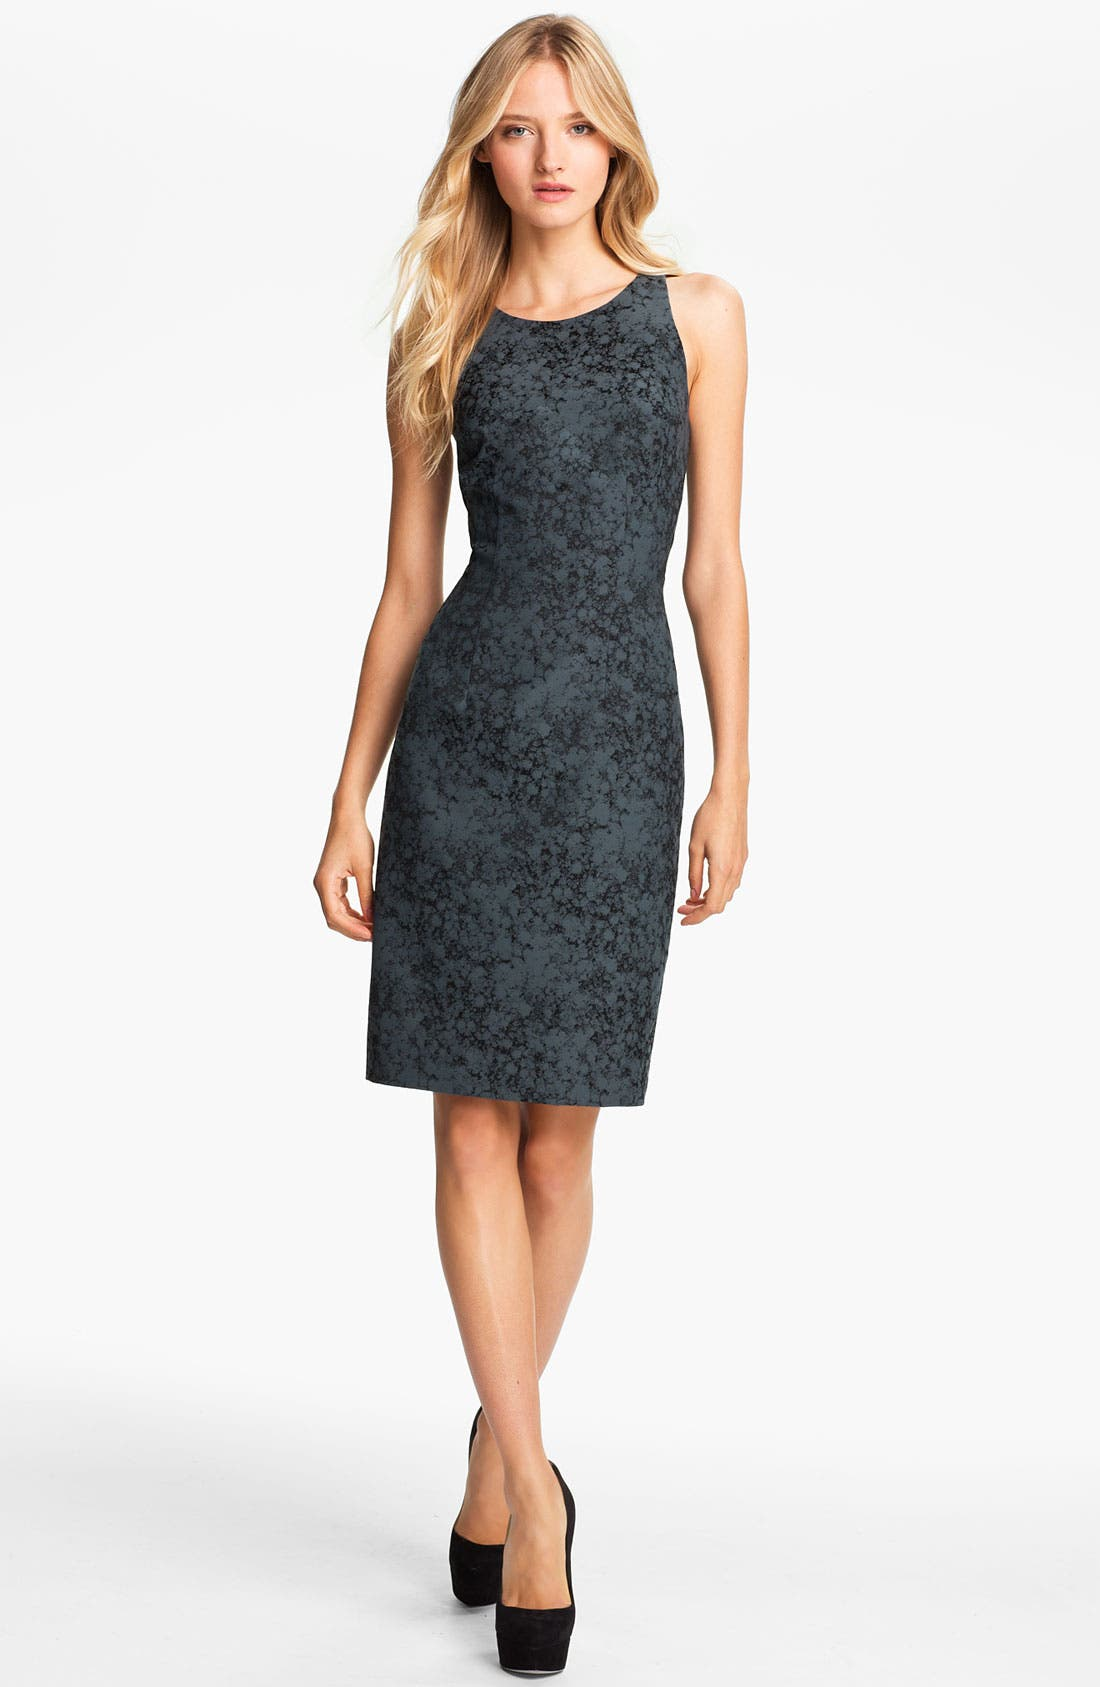 Alternate Image 1 Selected - Jay Godfrey 'Naomi' Abstract Print Dress (Nordstrom Exclusive)